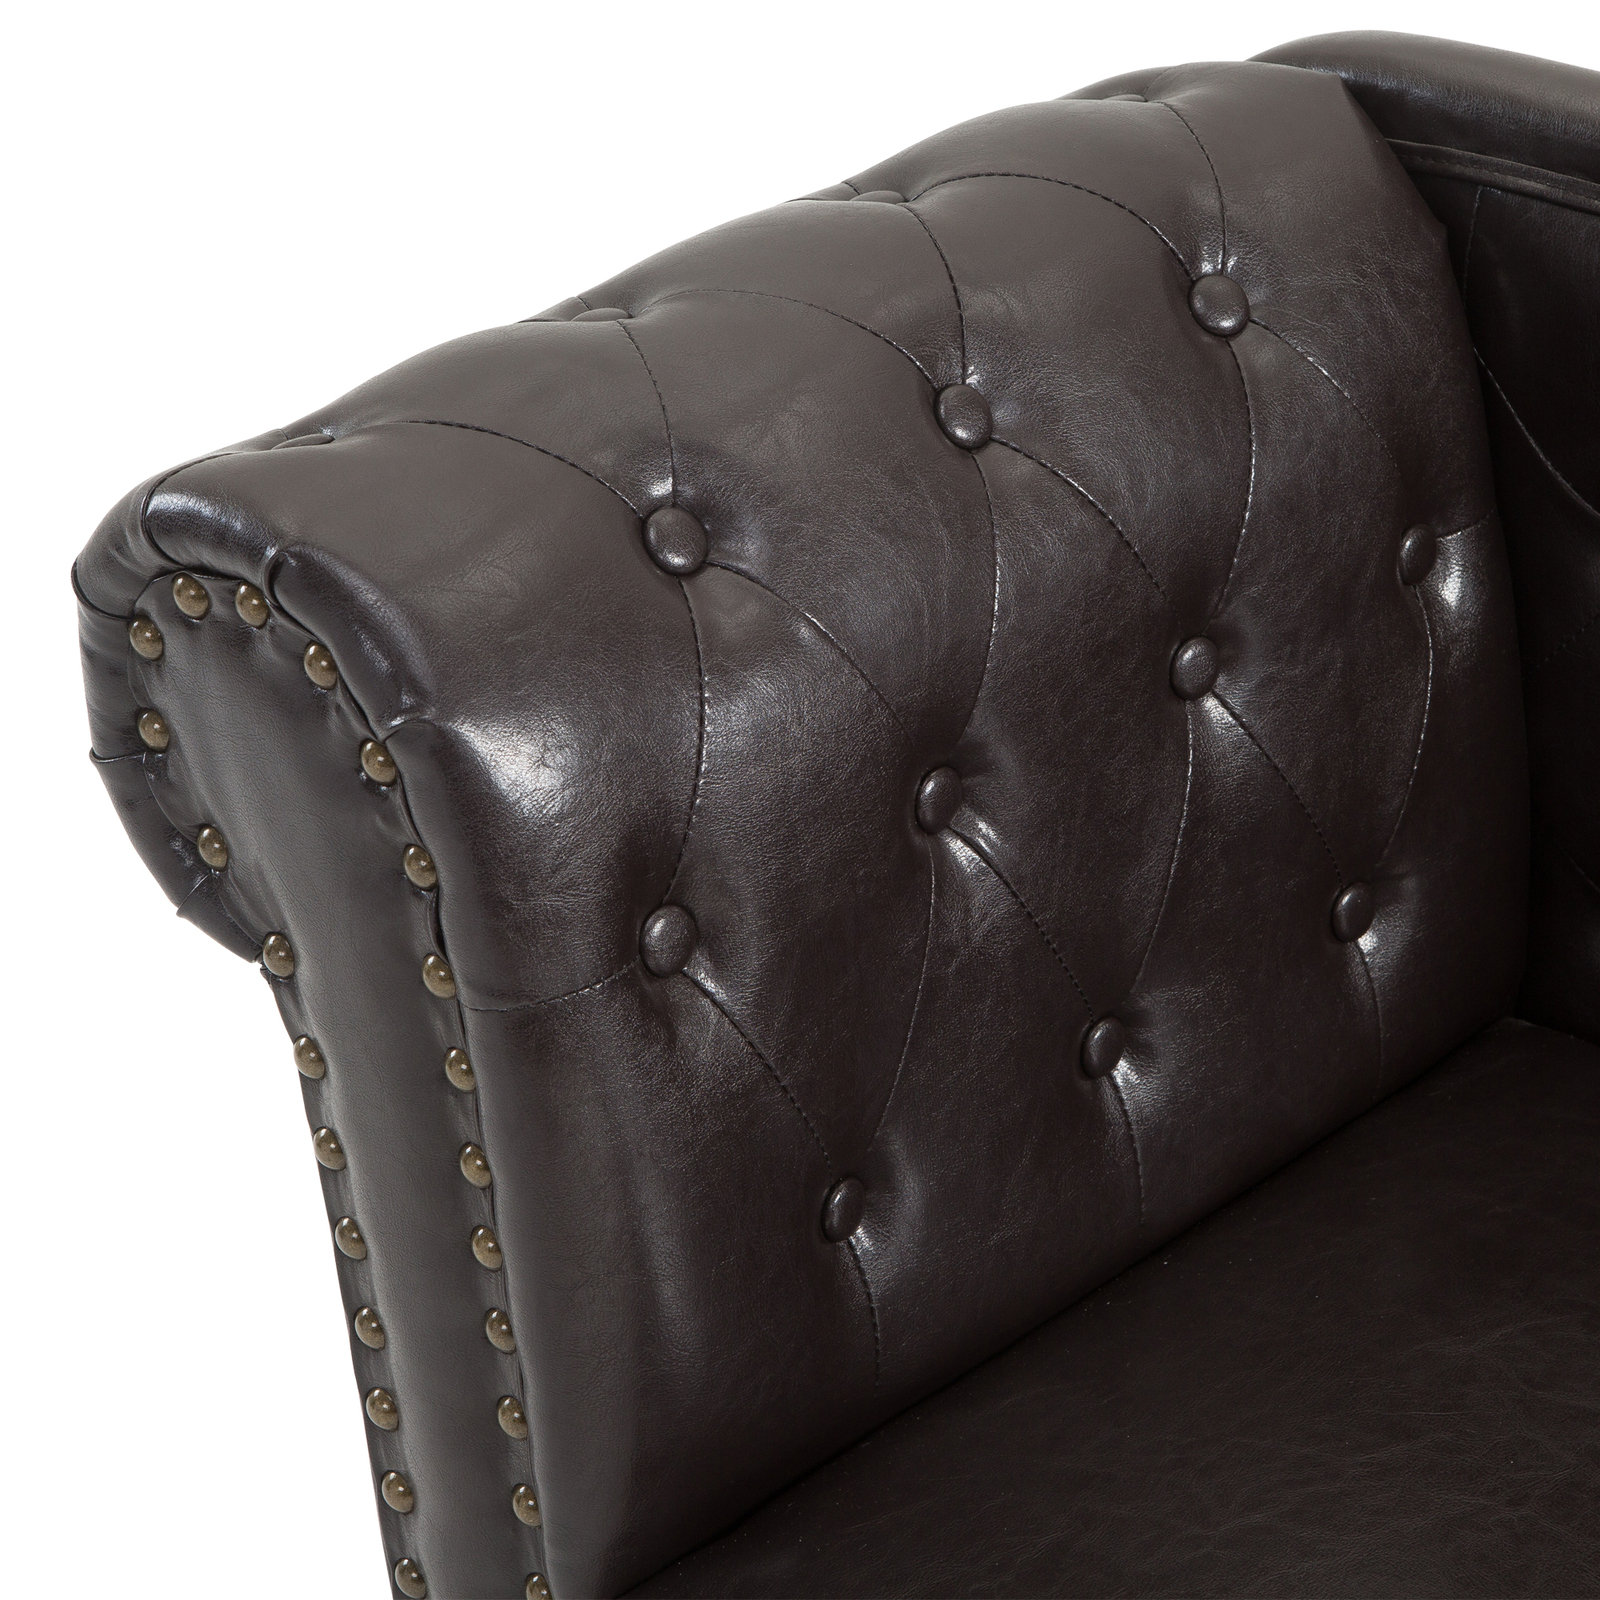 Chaise Lounge Leisure Sofa Chair Couch Furniture for Bedroom or Living Room